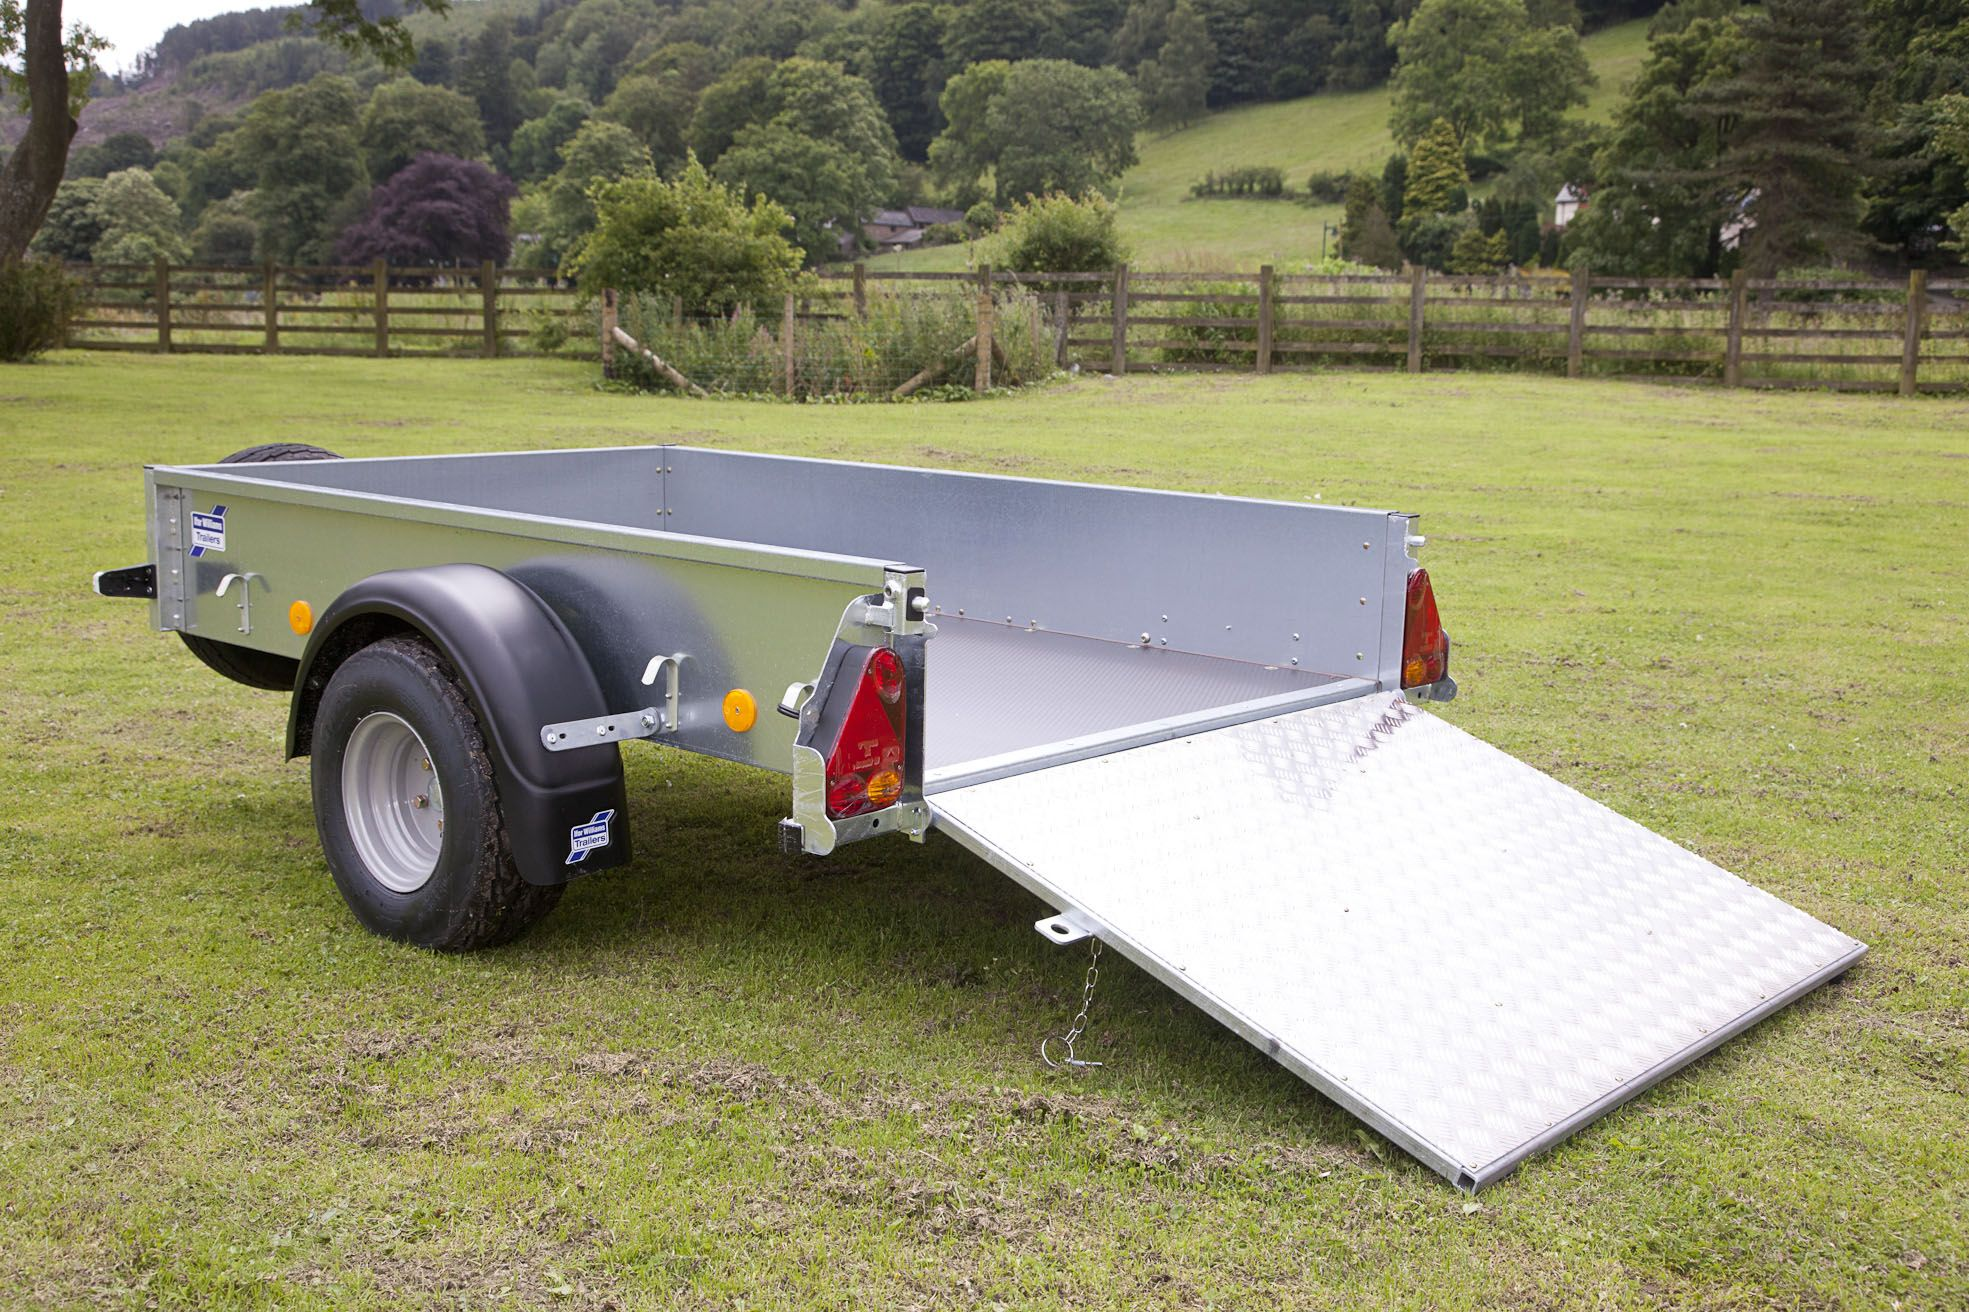 Ifor Williams P6e Model Complete With Ramp Trailer Antique Cars Cool Stuff